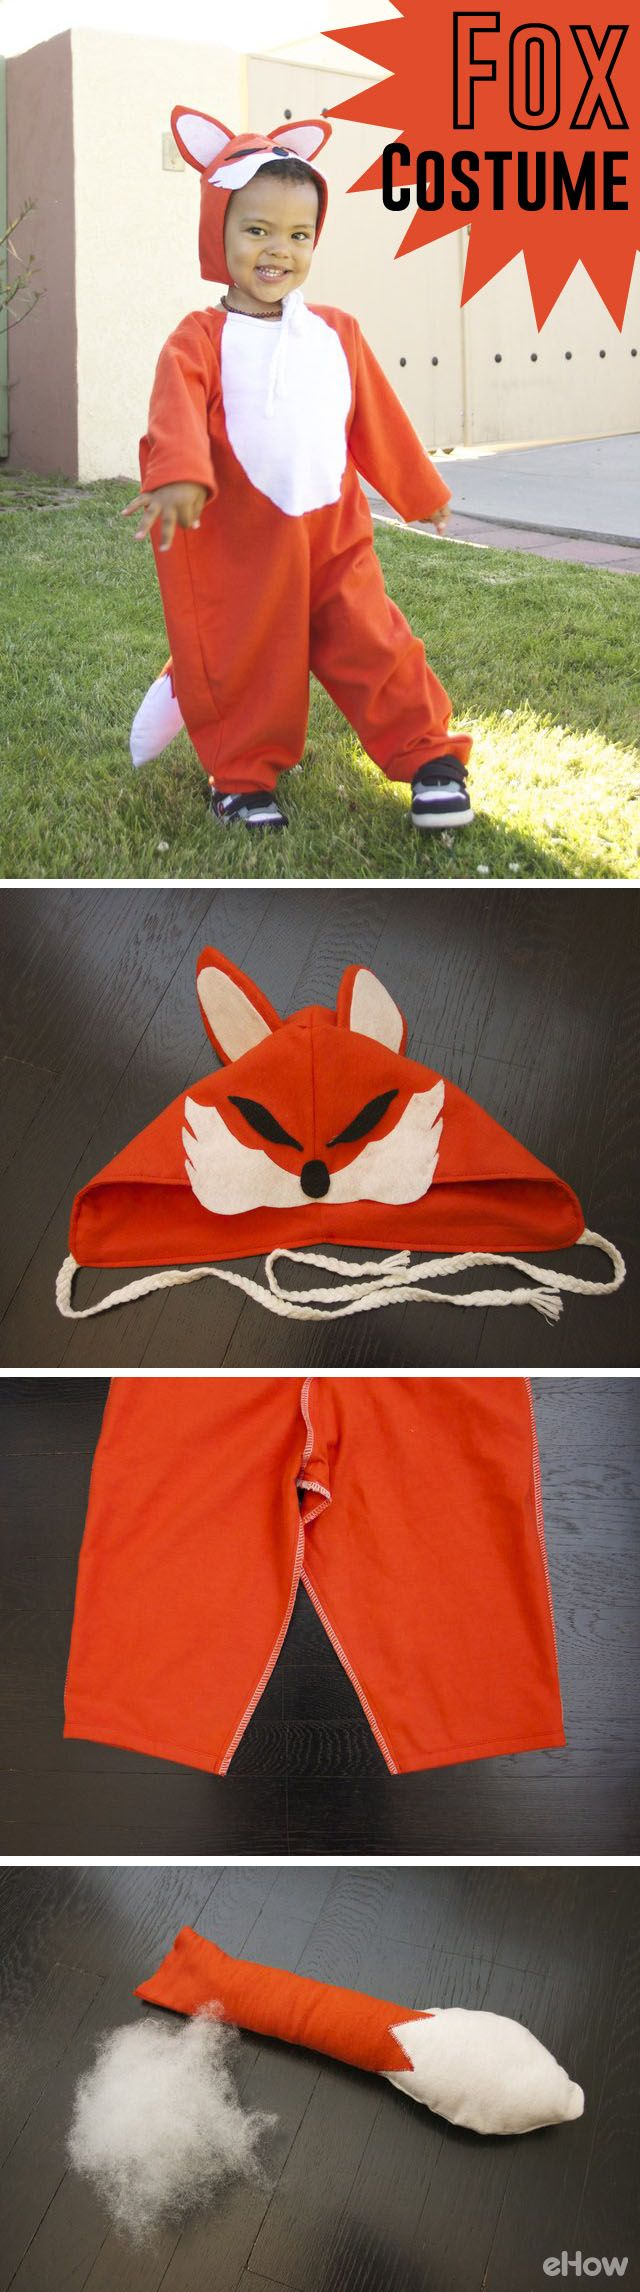 Free printable pattern included!! You can easily make his fox costume yourself this year for Halloween and have the cutest little fox on the block!  Get the free printable pattern and the full how-to here: http://www.ehow.com/how_4882211_make-fox-costume.html?utm_source=pinterest.com&utm_medium=referral&utm_content=freestyle&utm_campaign=fanpage